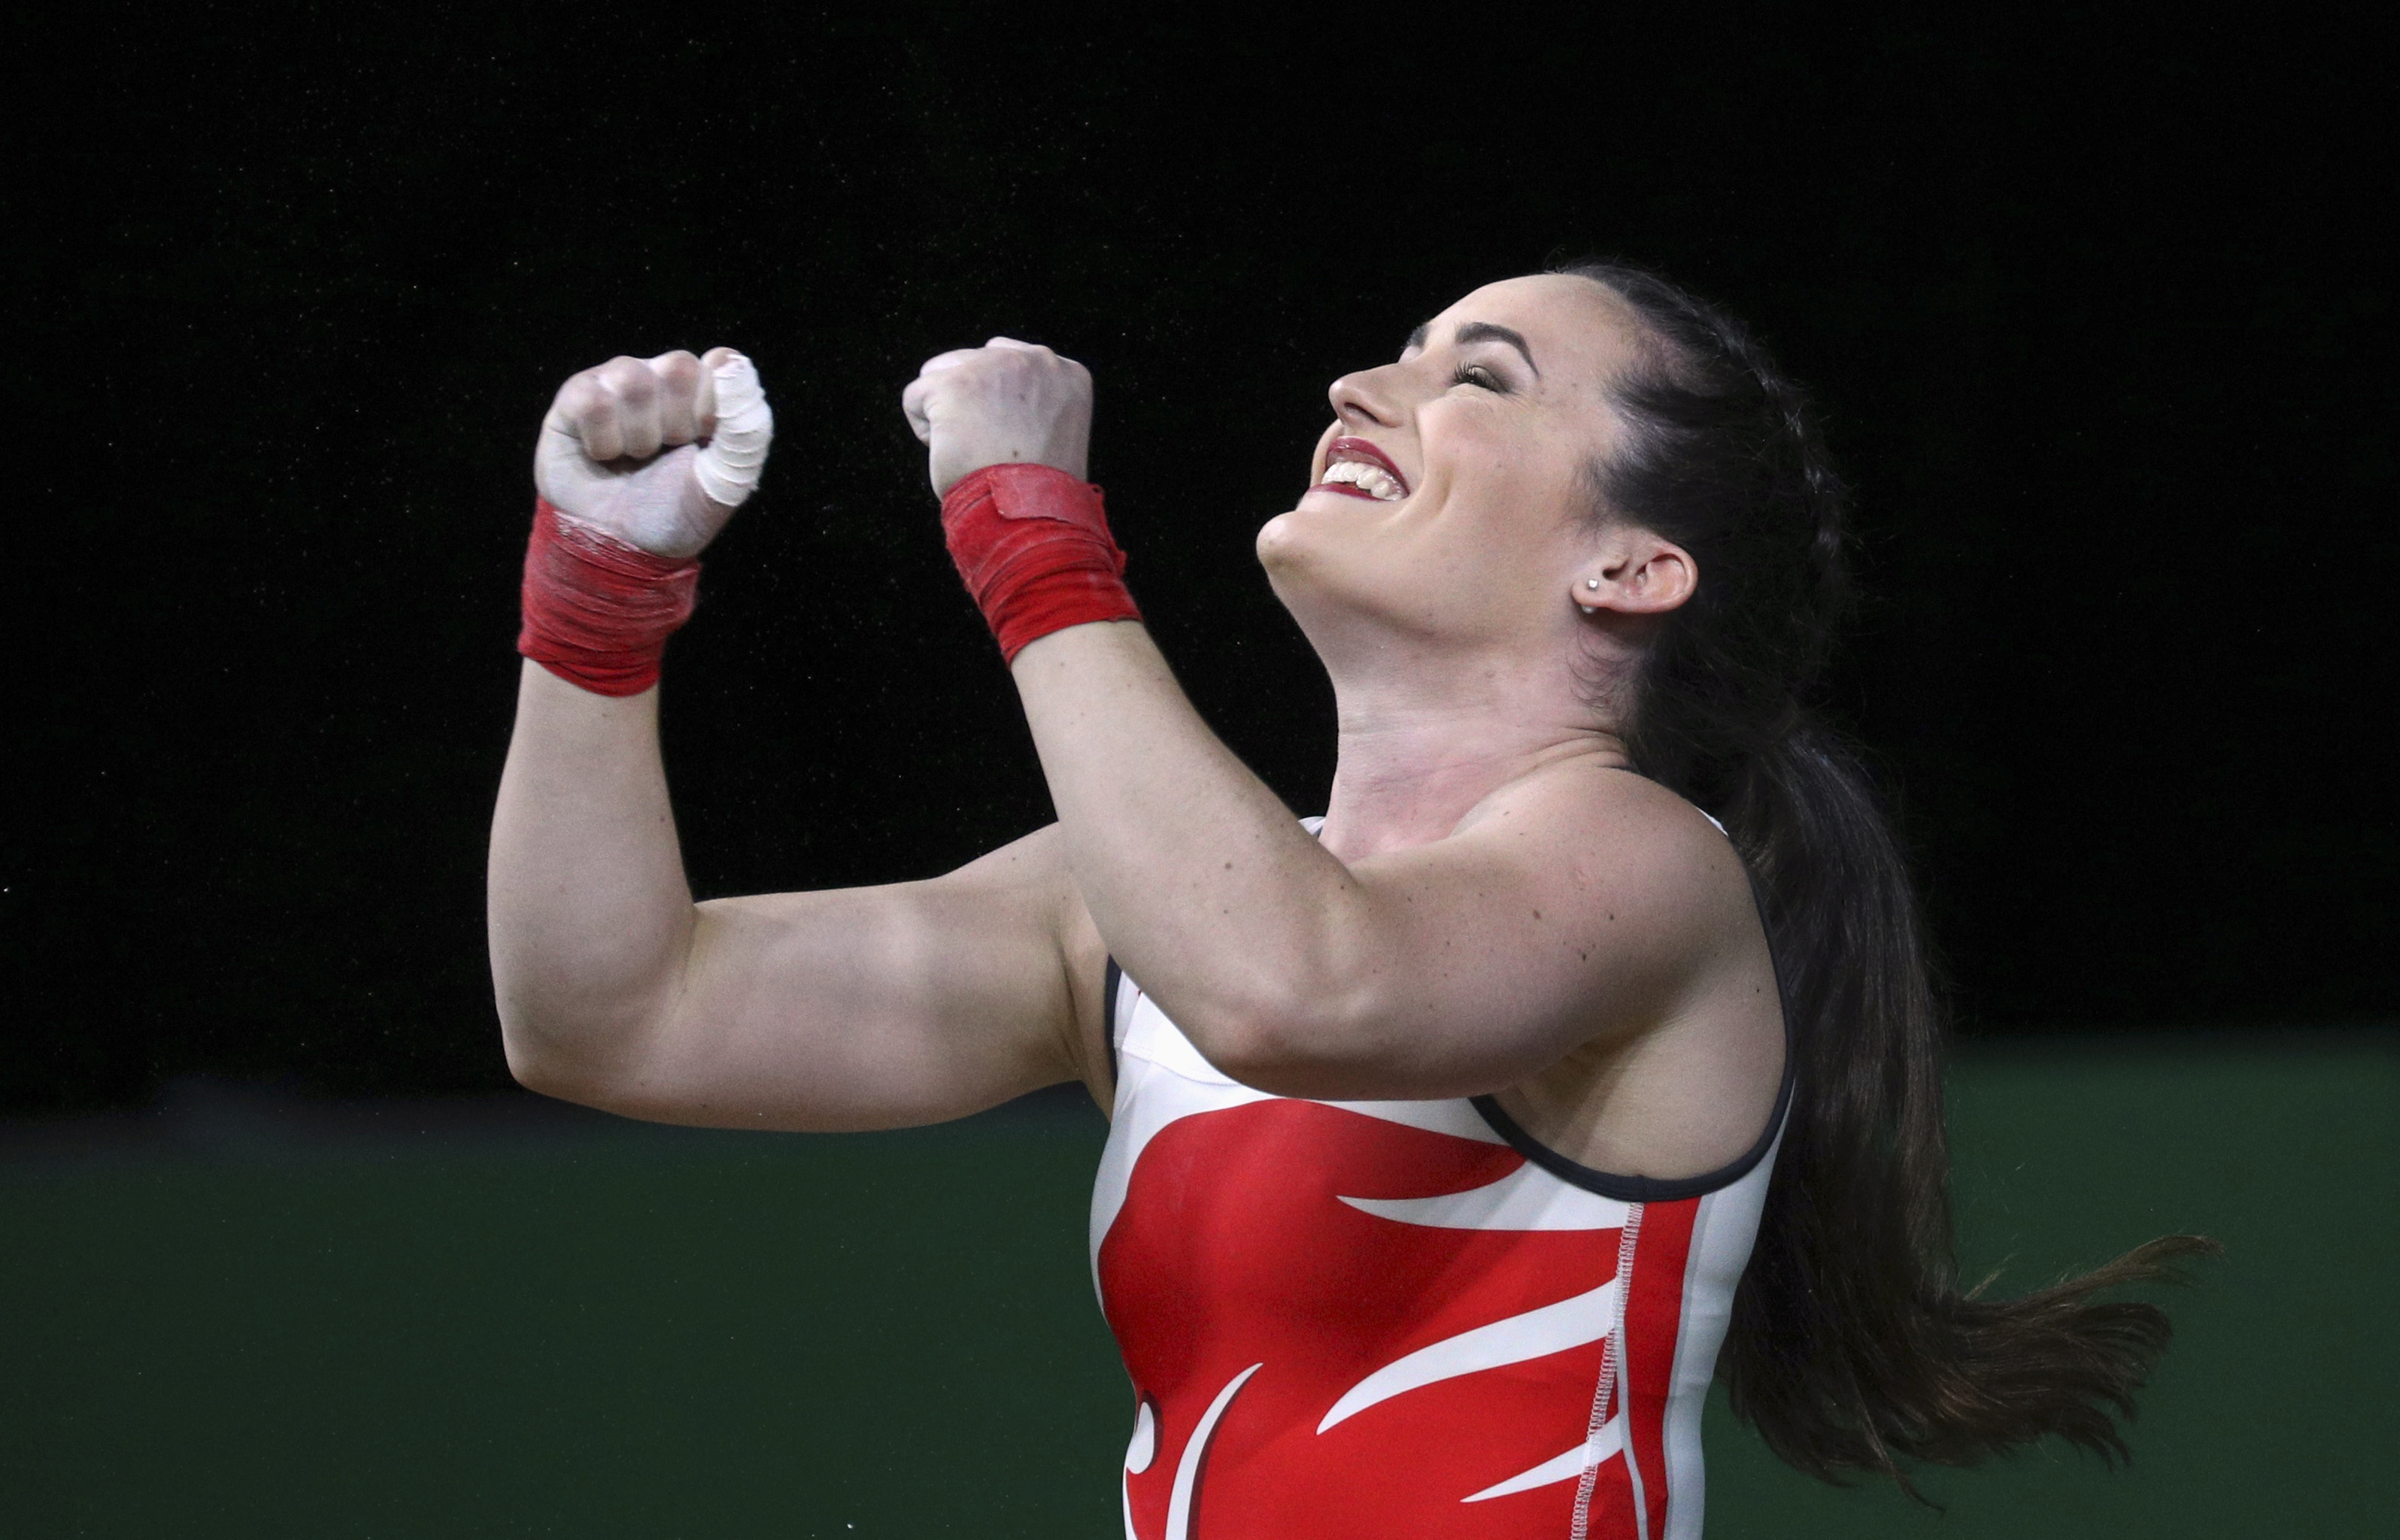 Weightlifting - Sarah Davies reacts in the women's 69kg final at the 2018 Commonwealth Games - Carrara Sports Arena 1 - Gold Coast, Australia - April 8, 2018.. REUTERS/Athit Perawongmetha/File Photo